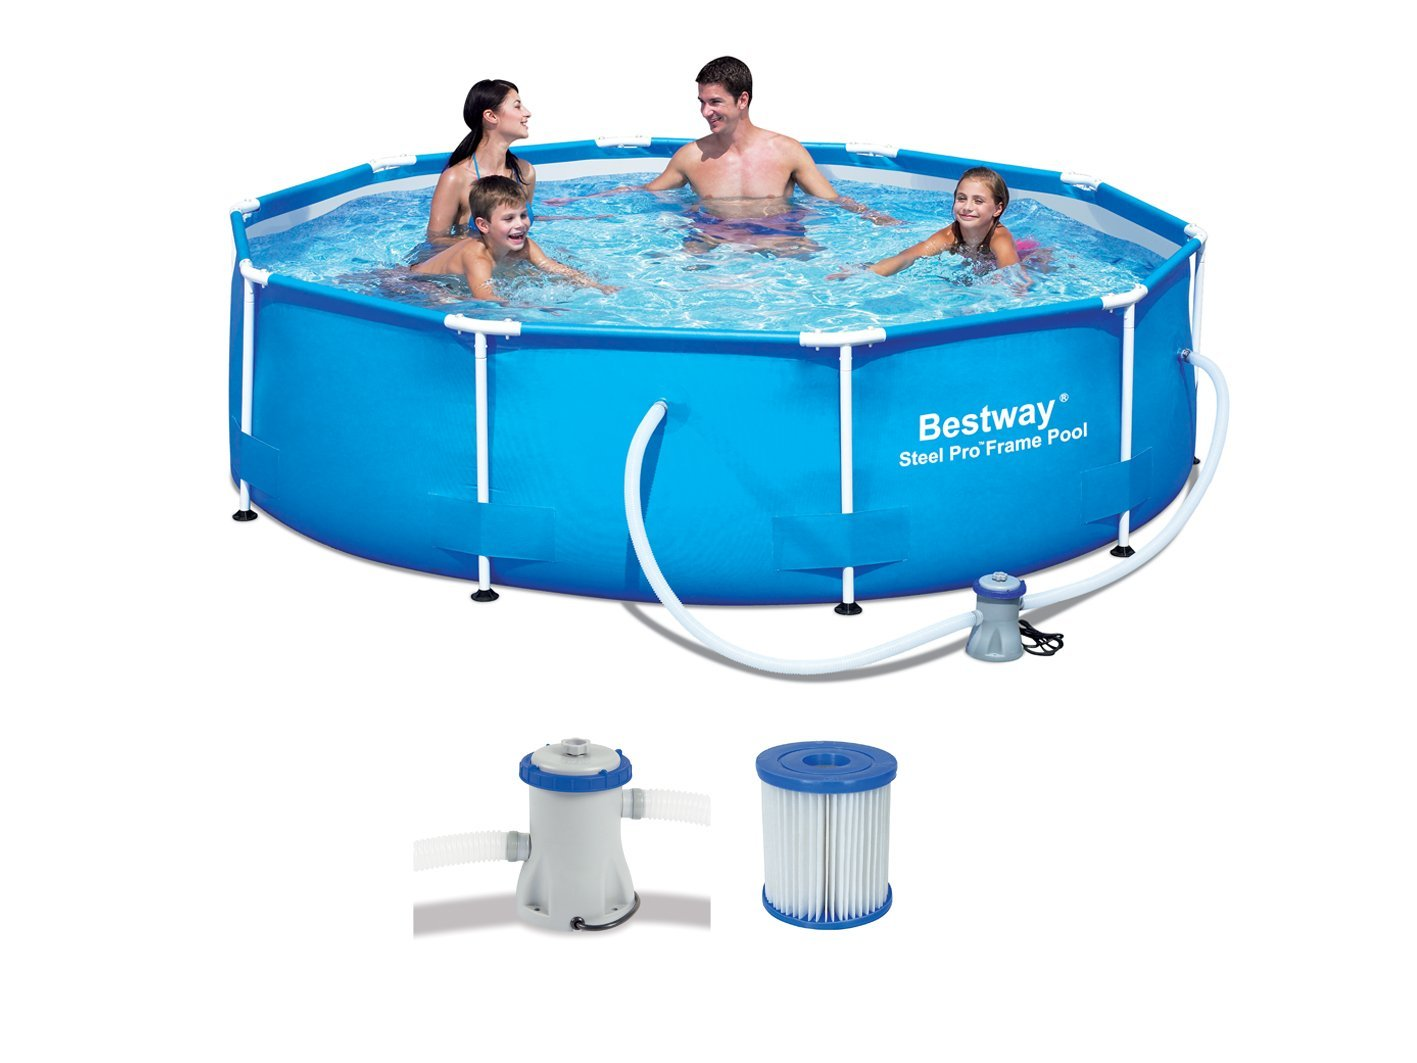 Pool angebot test neu for Aufblasbare pools im angebot